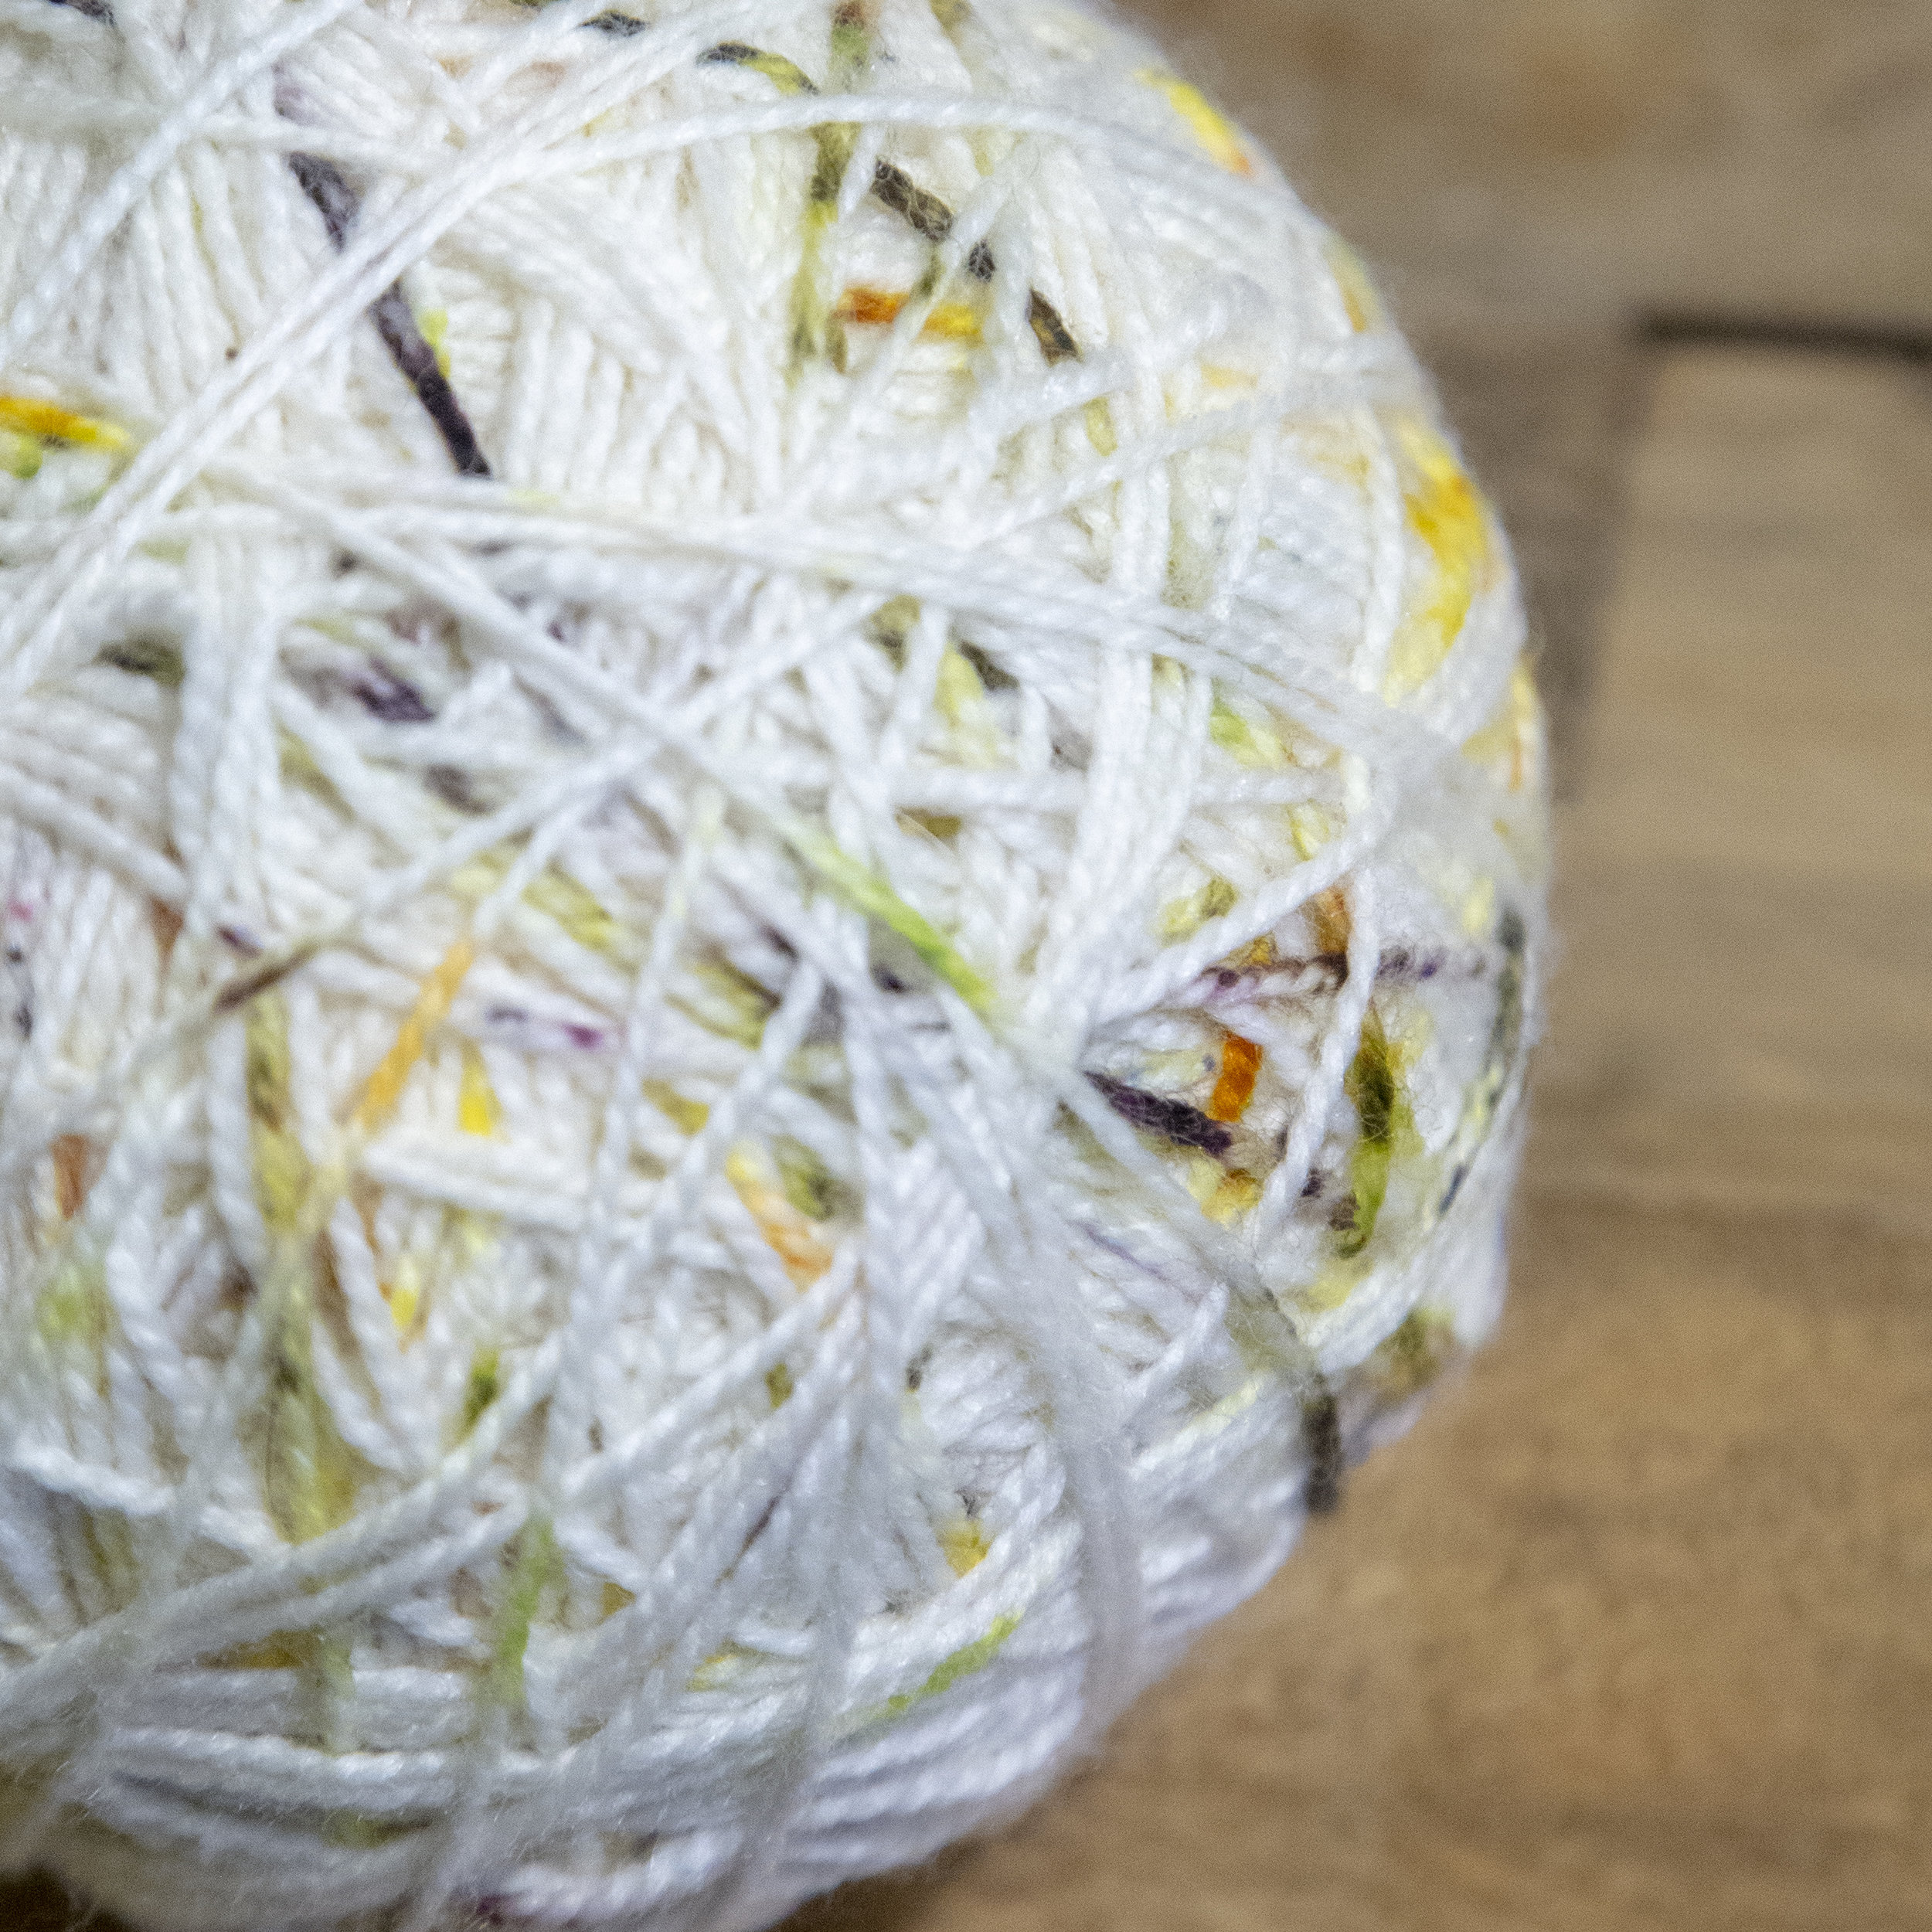 Ball of white speckled yarn